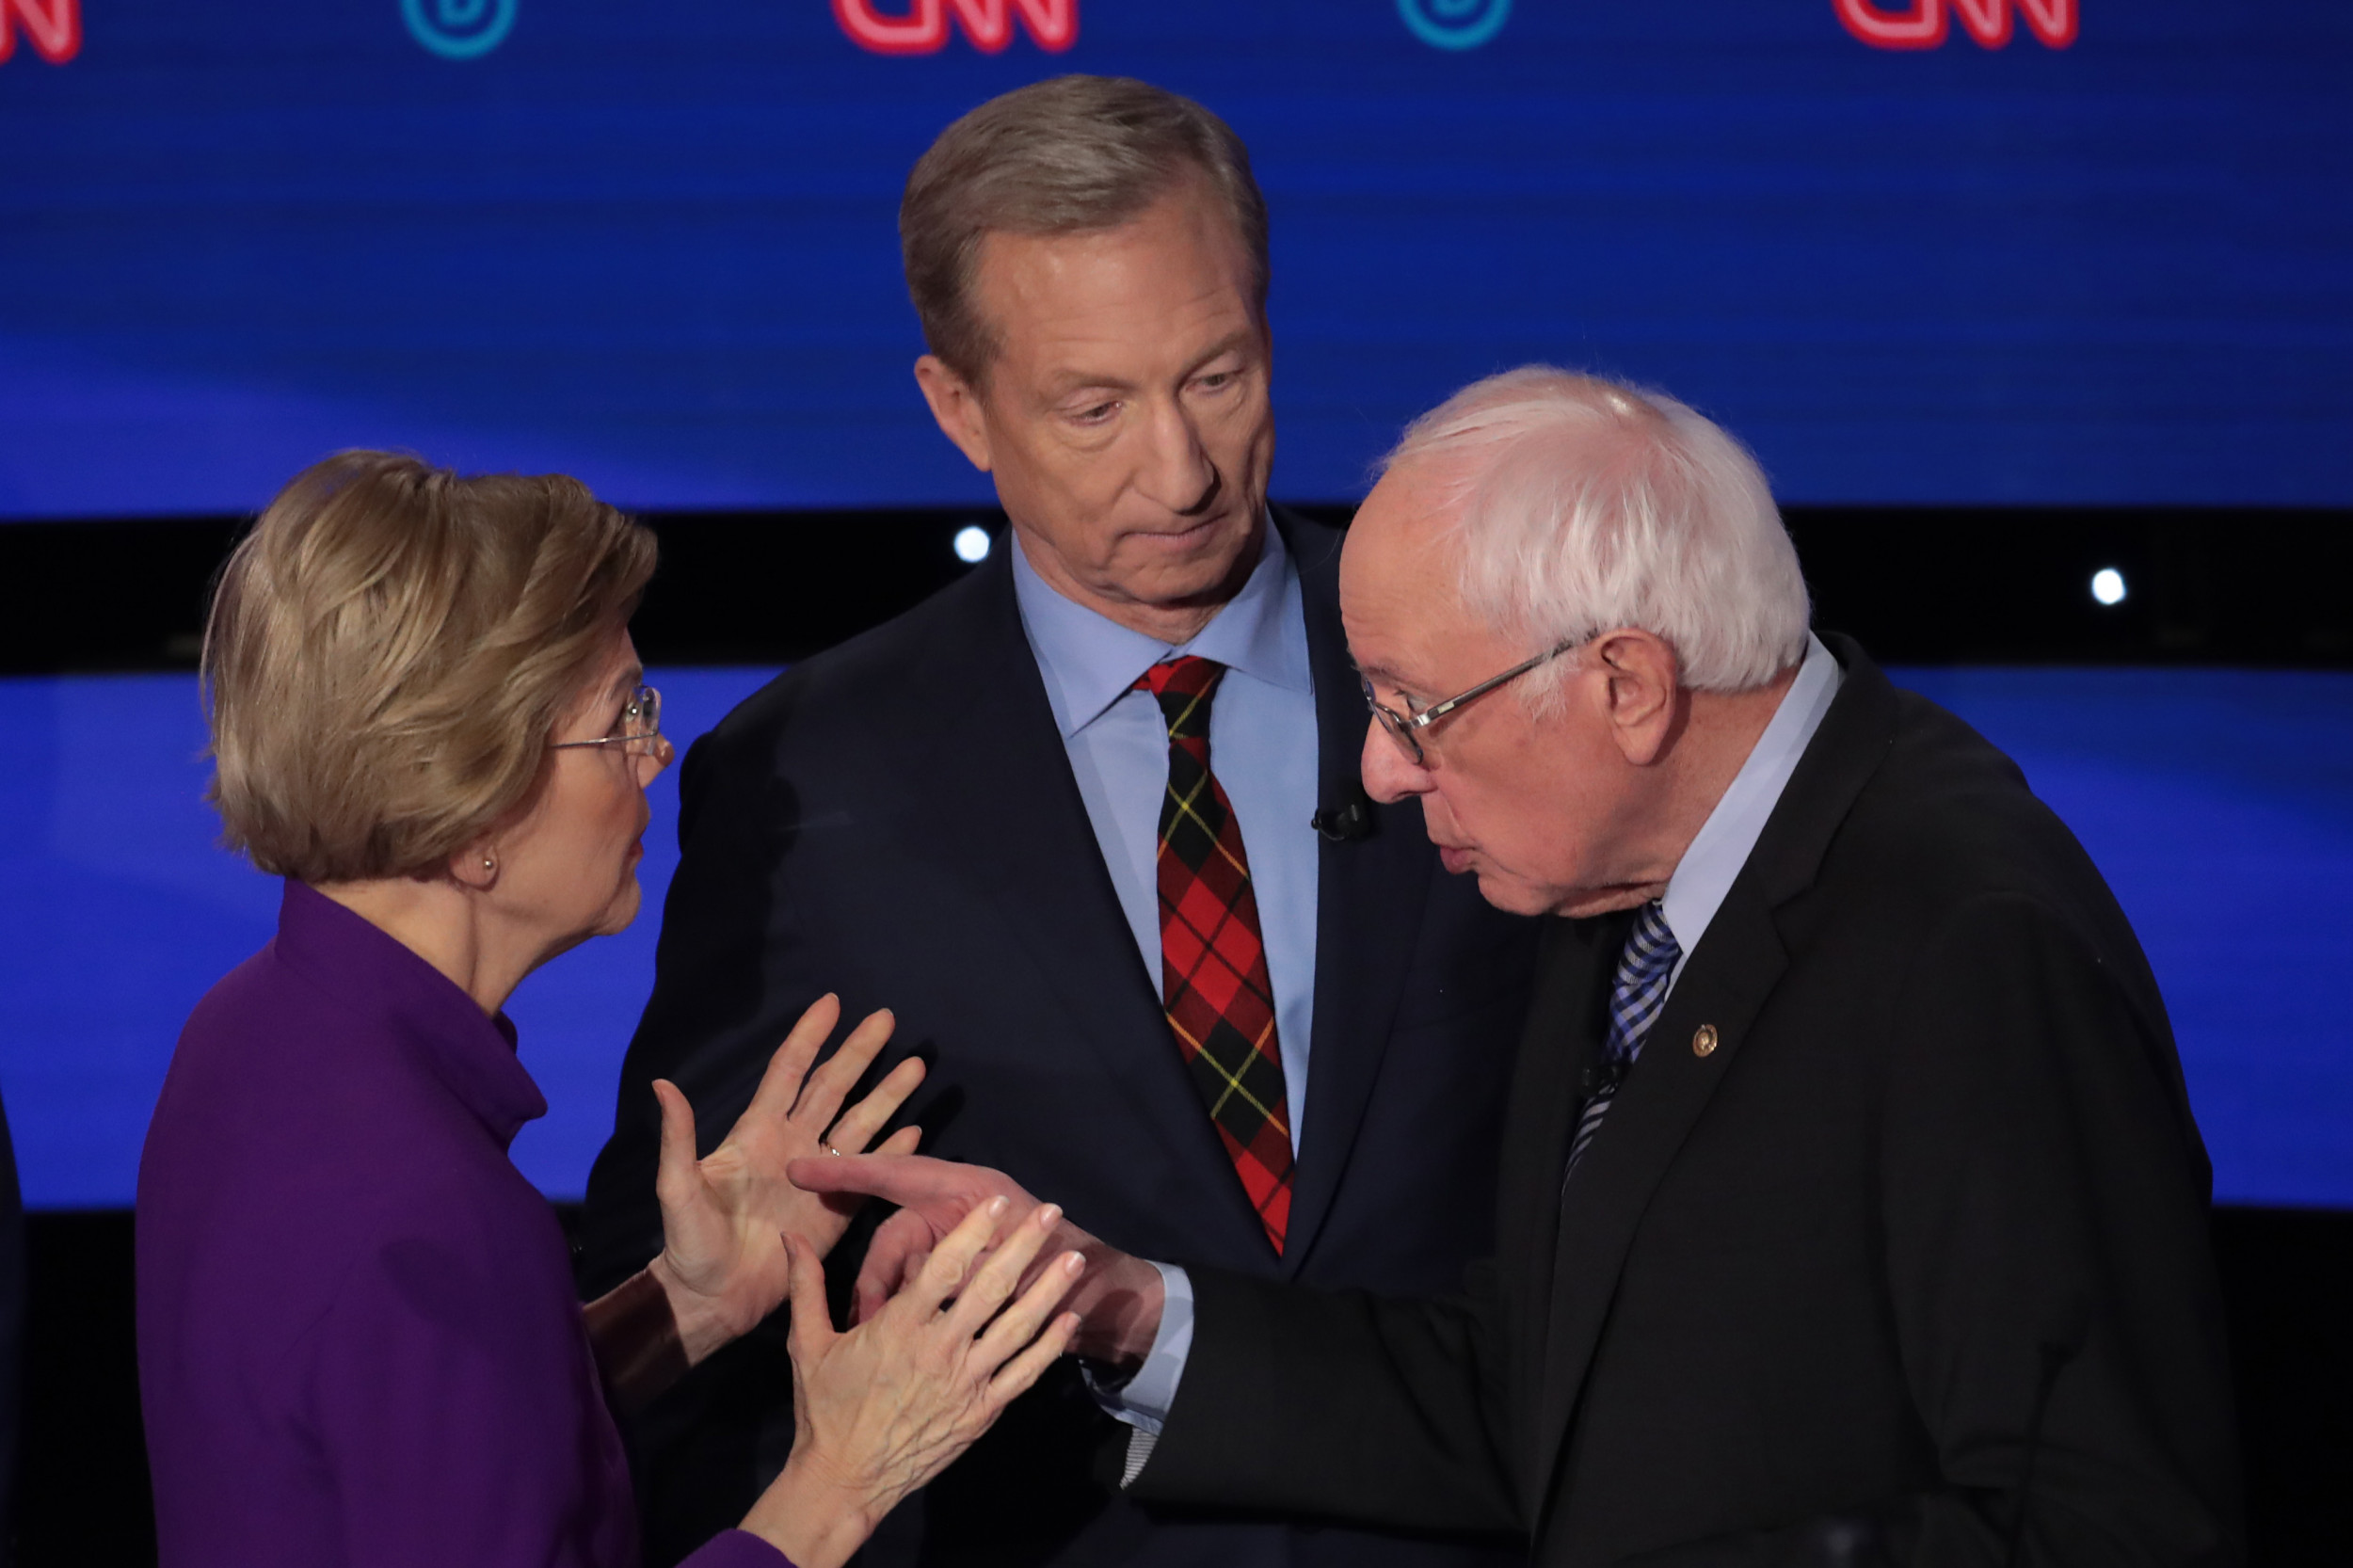 Senator Elizabeth Warren refuses post-debate handshake with Senator Bernie Sanders